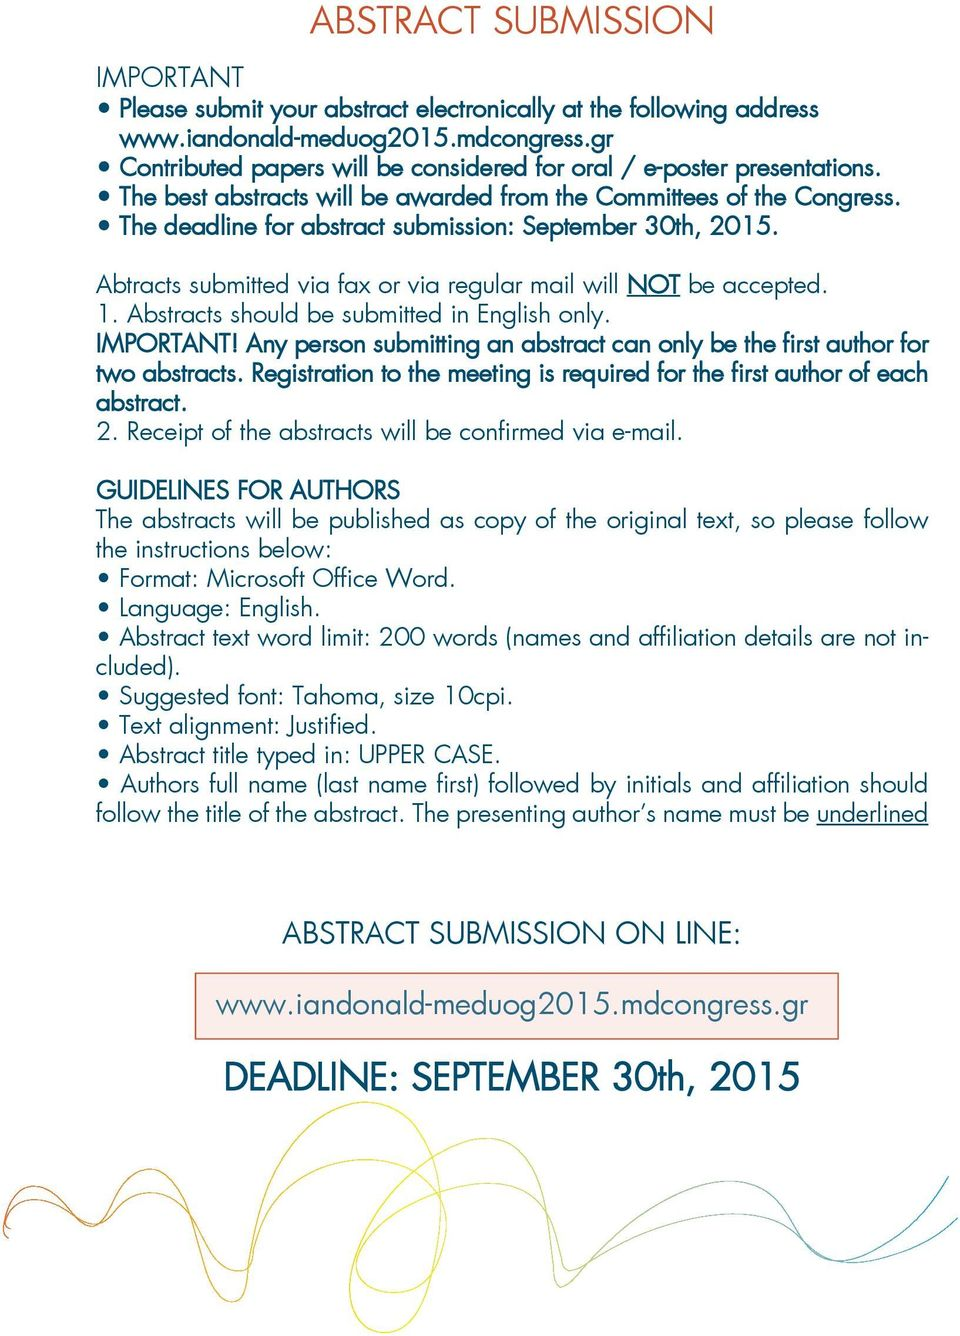 The deadline for abstract submission: September 30th, 2015. Abtracts submitted via fax or via regular mail will NOT be accepted. 1. Abstracts should be submitted in English only. IMPORTANT!